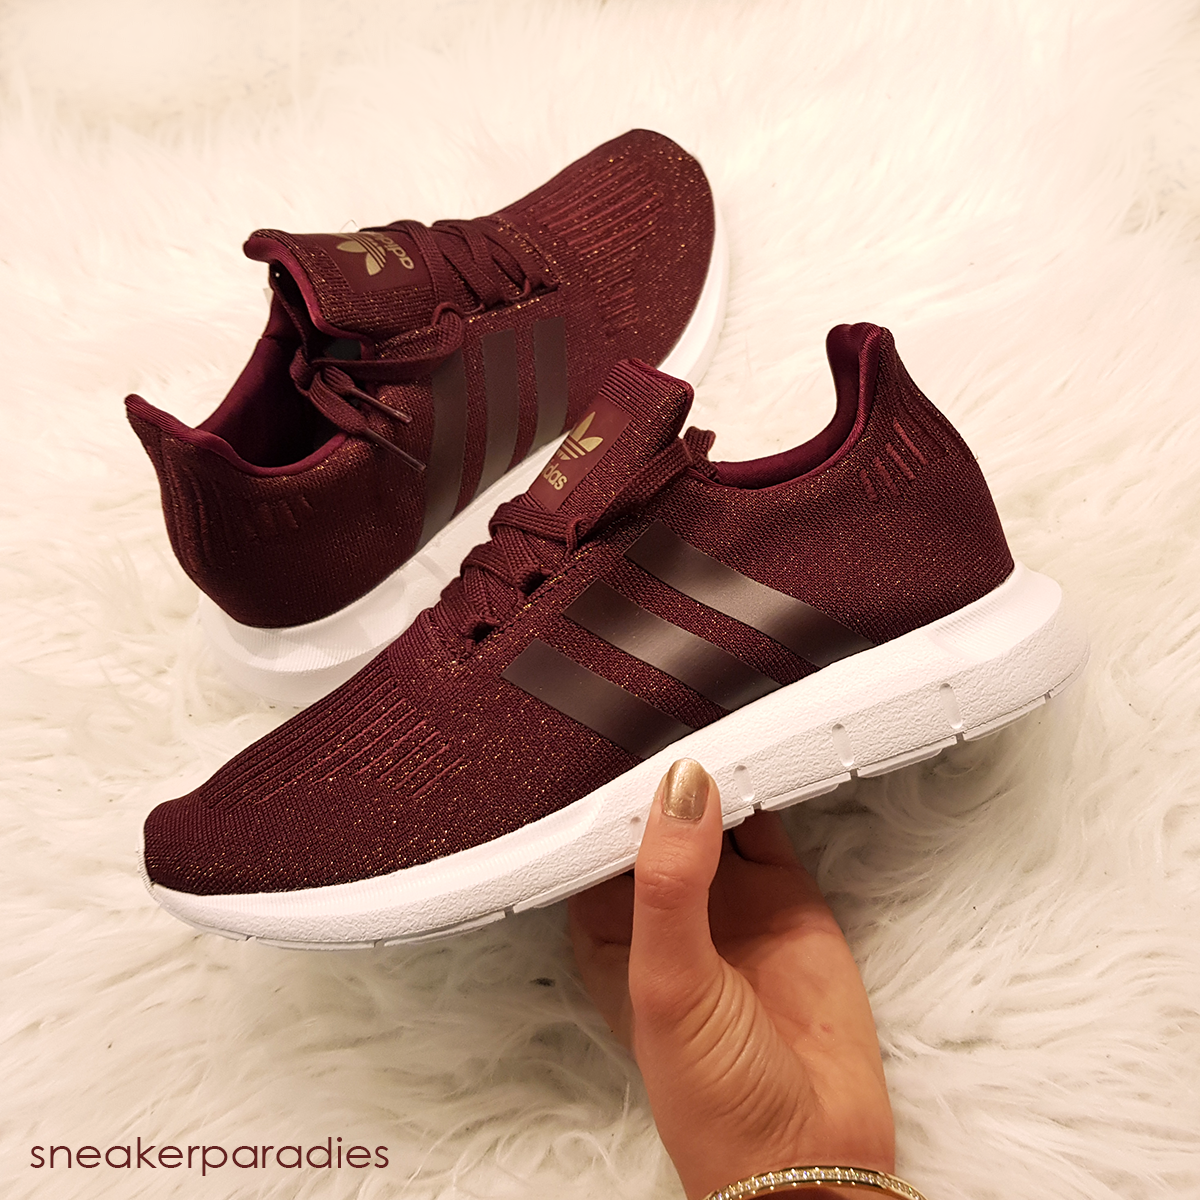 ADIDAS ORIGINALS SWIFT RUN SNEAKER LOW MAROON/FOOTWEAR WHITE